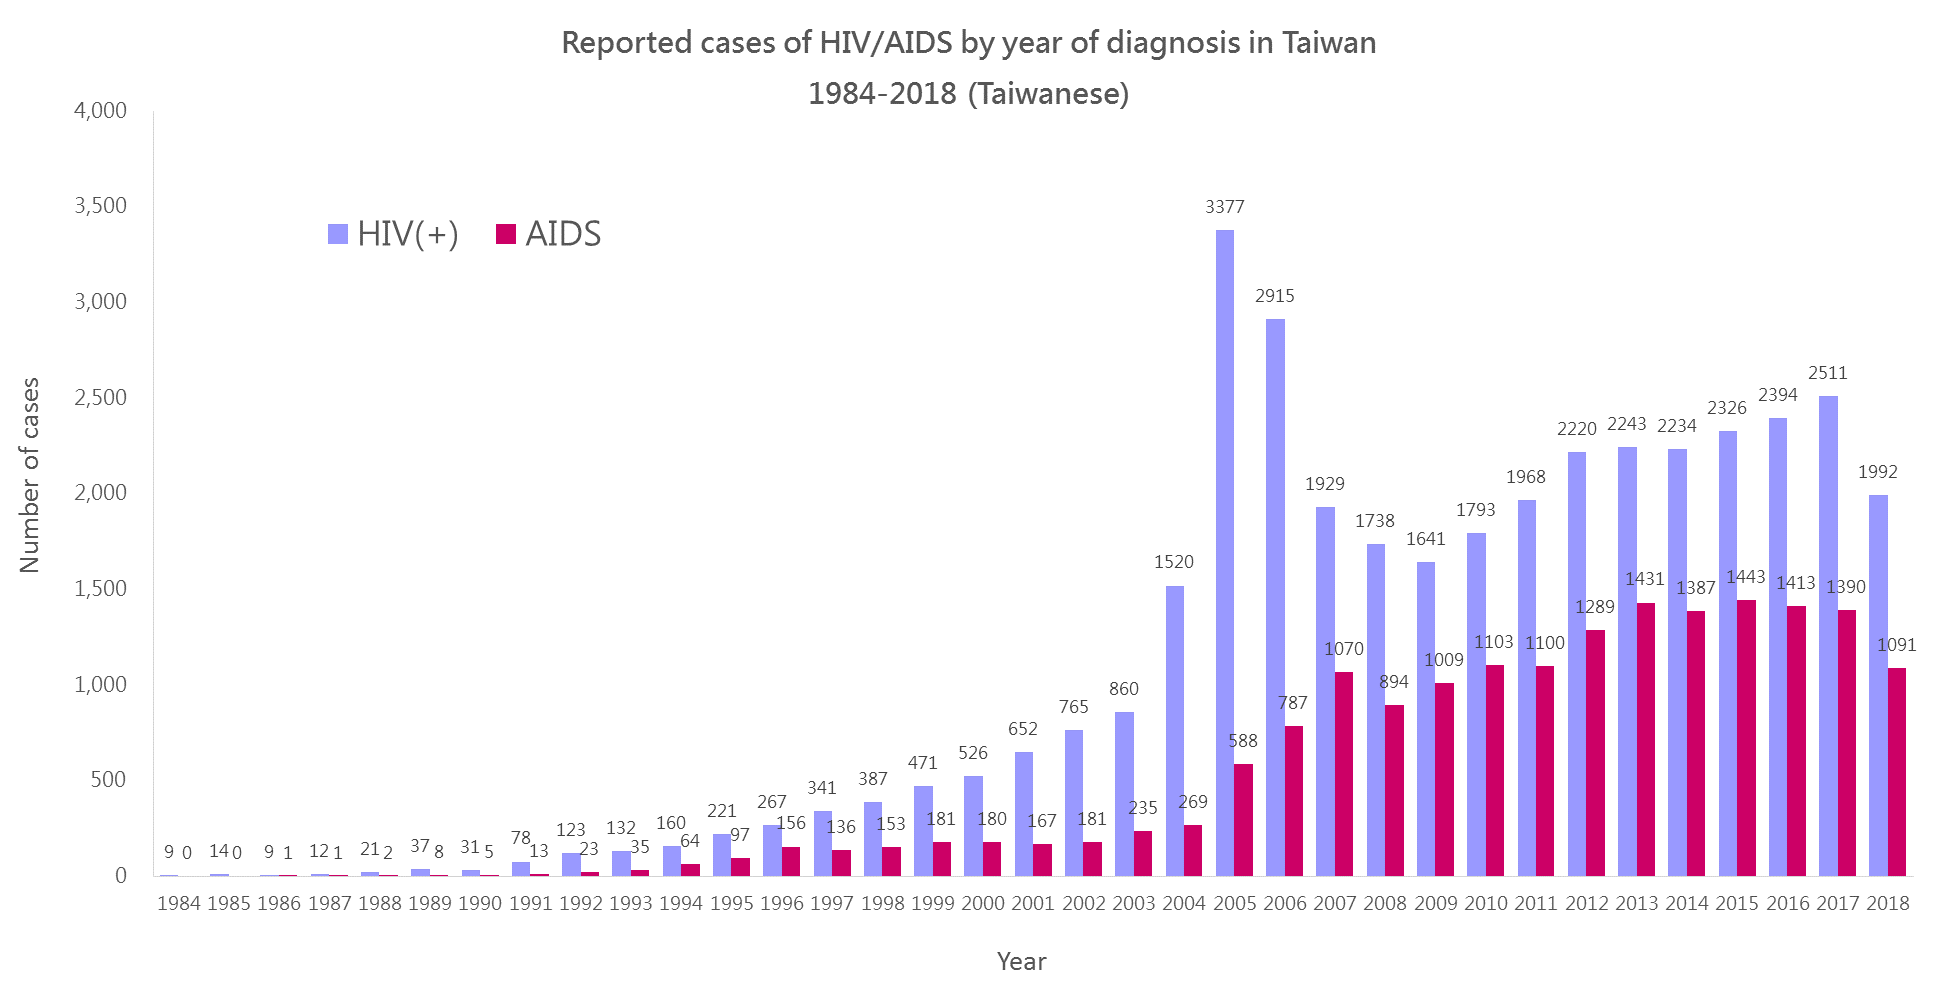 HIV/AIDS by Year of Diagnosis in Taiwan